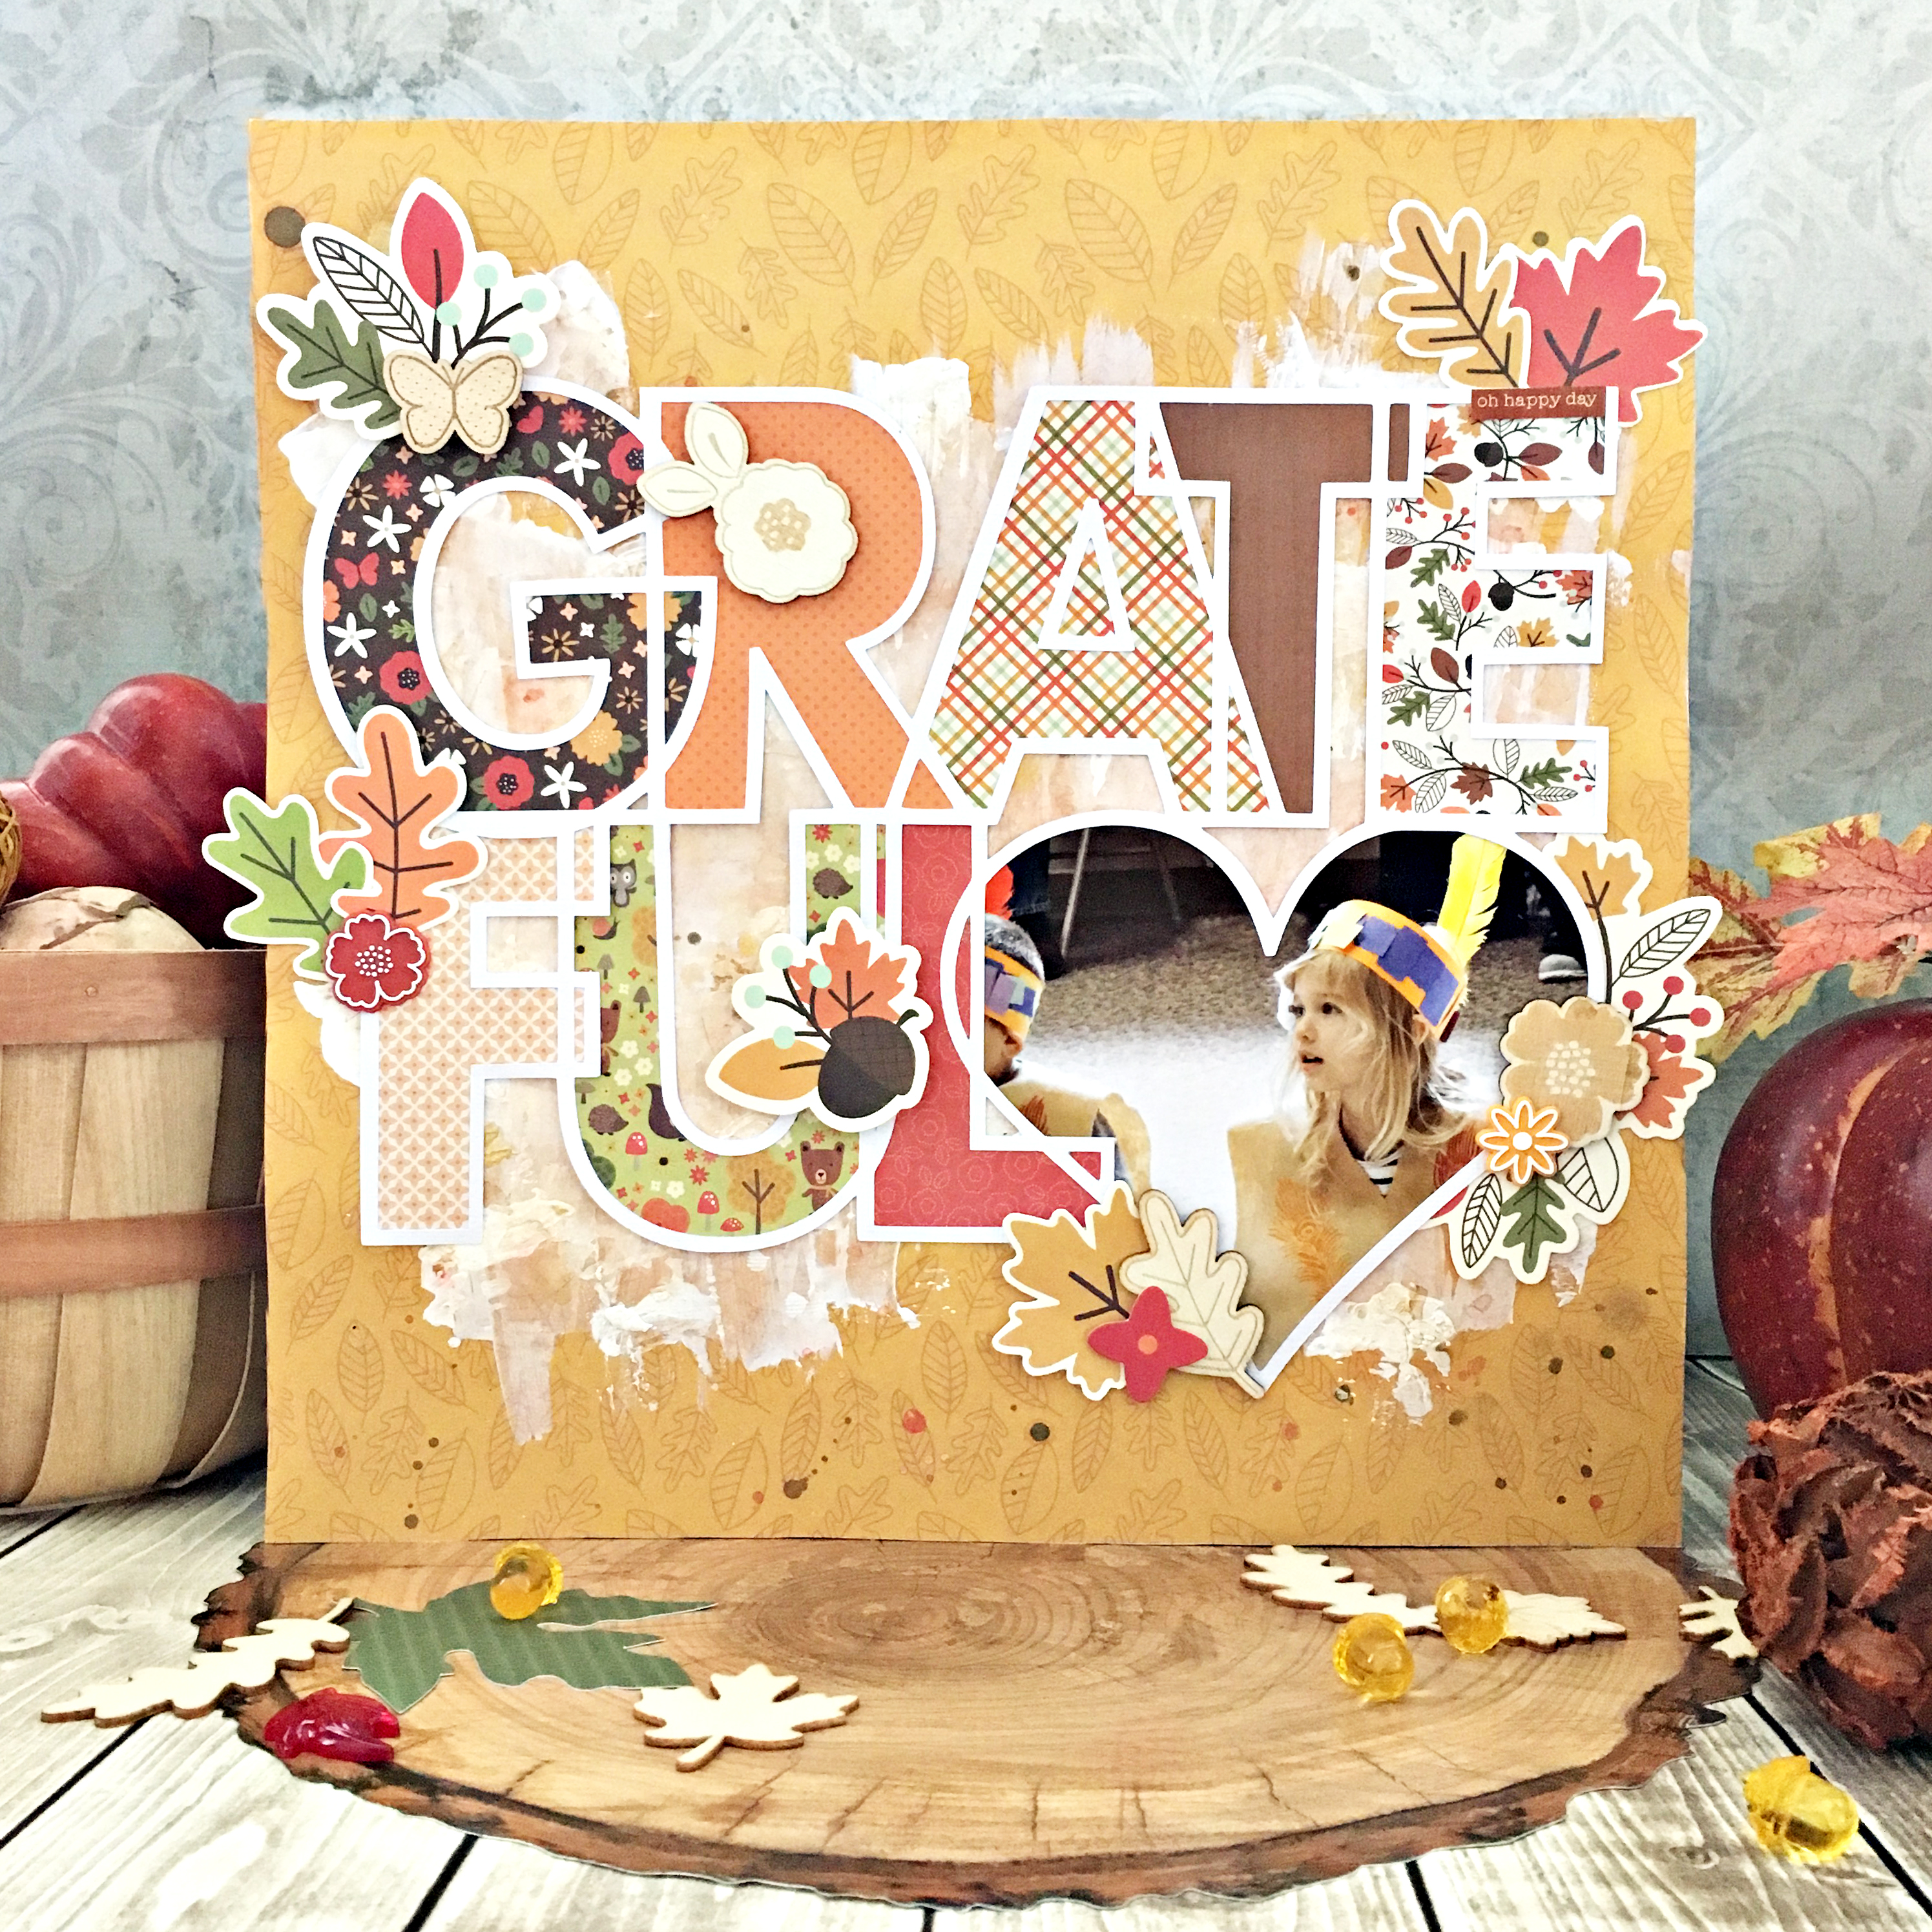 Grateful heart layout with free cut file made by @heatherleopard using the #WoodlandForest collection from @PebblesInc.